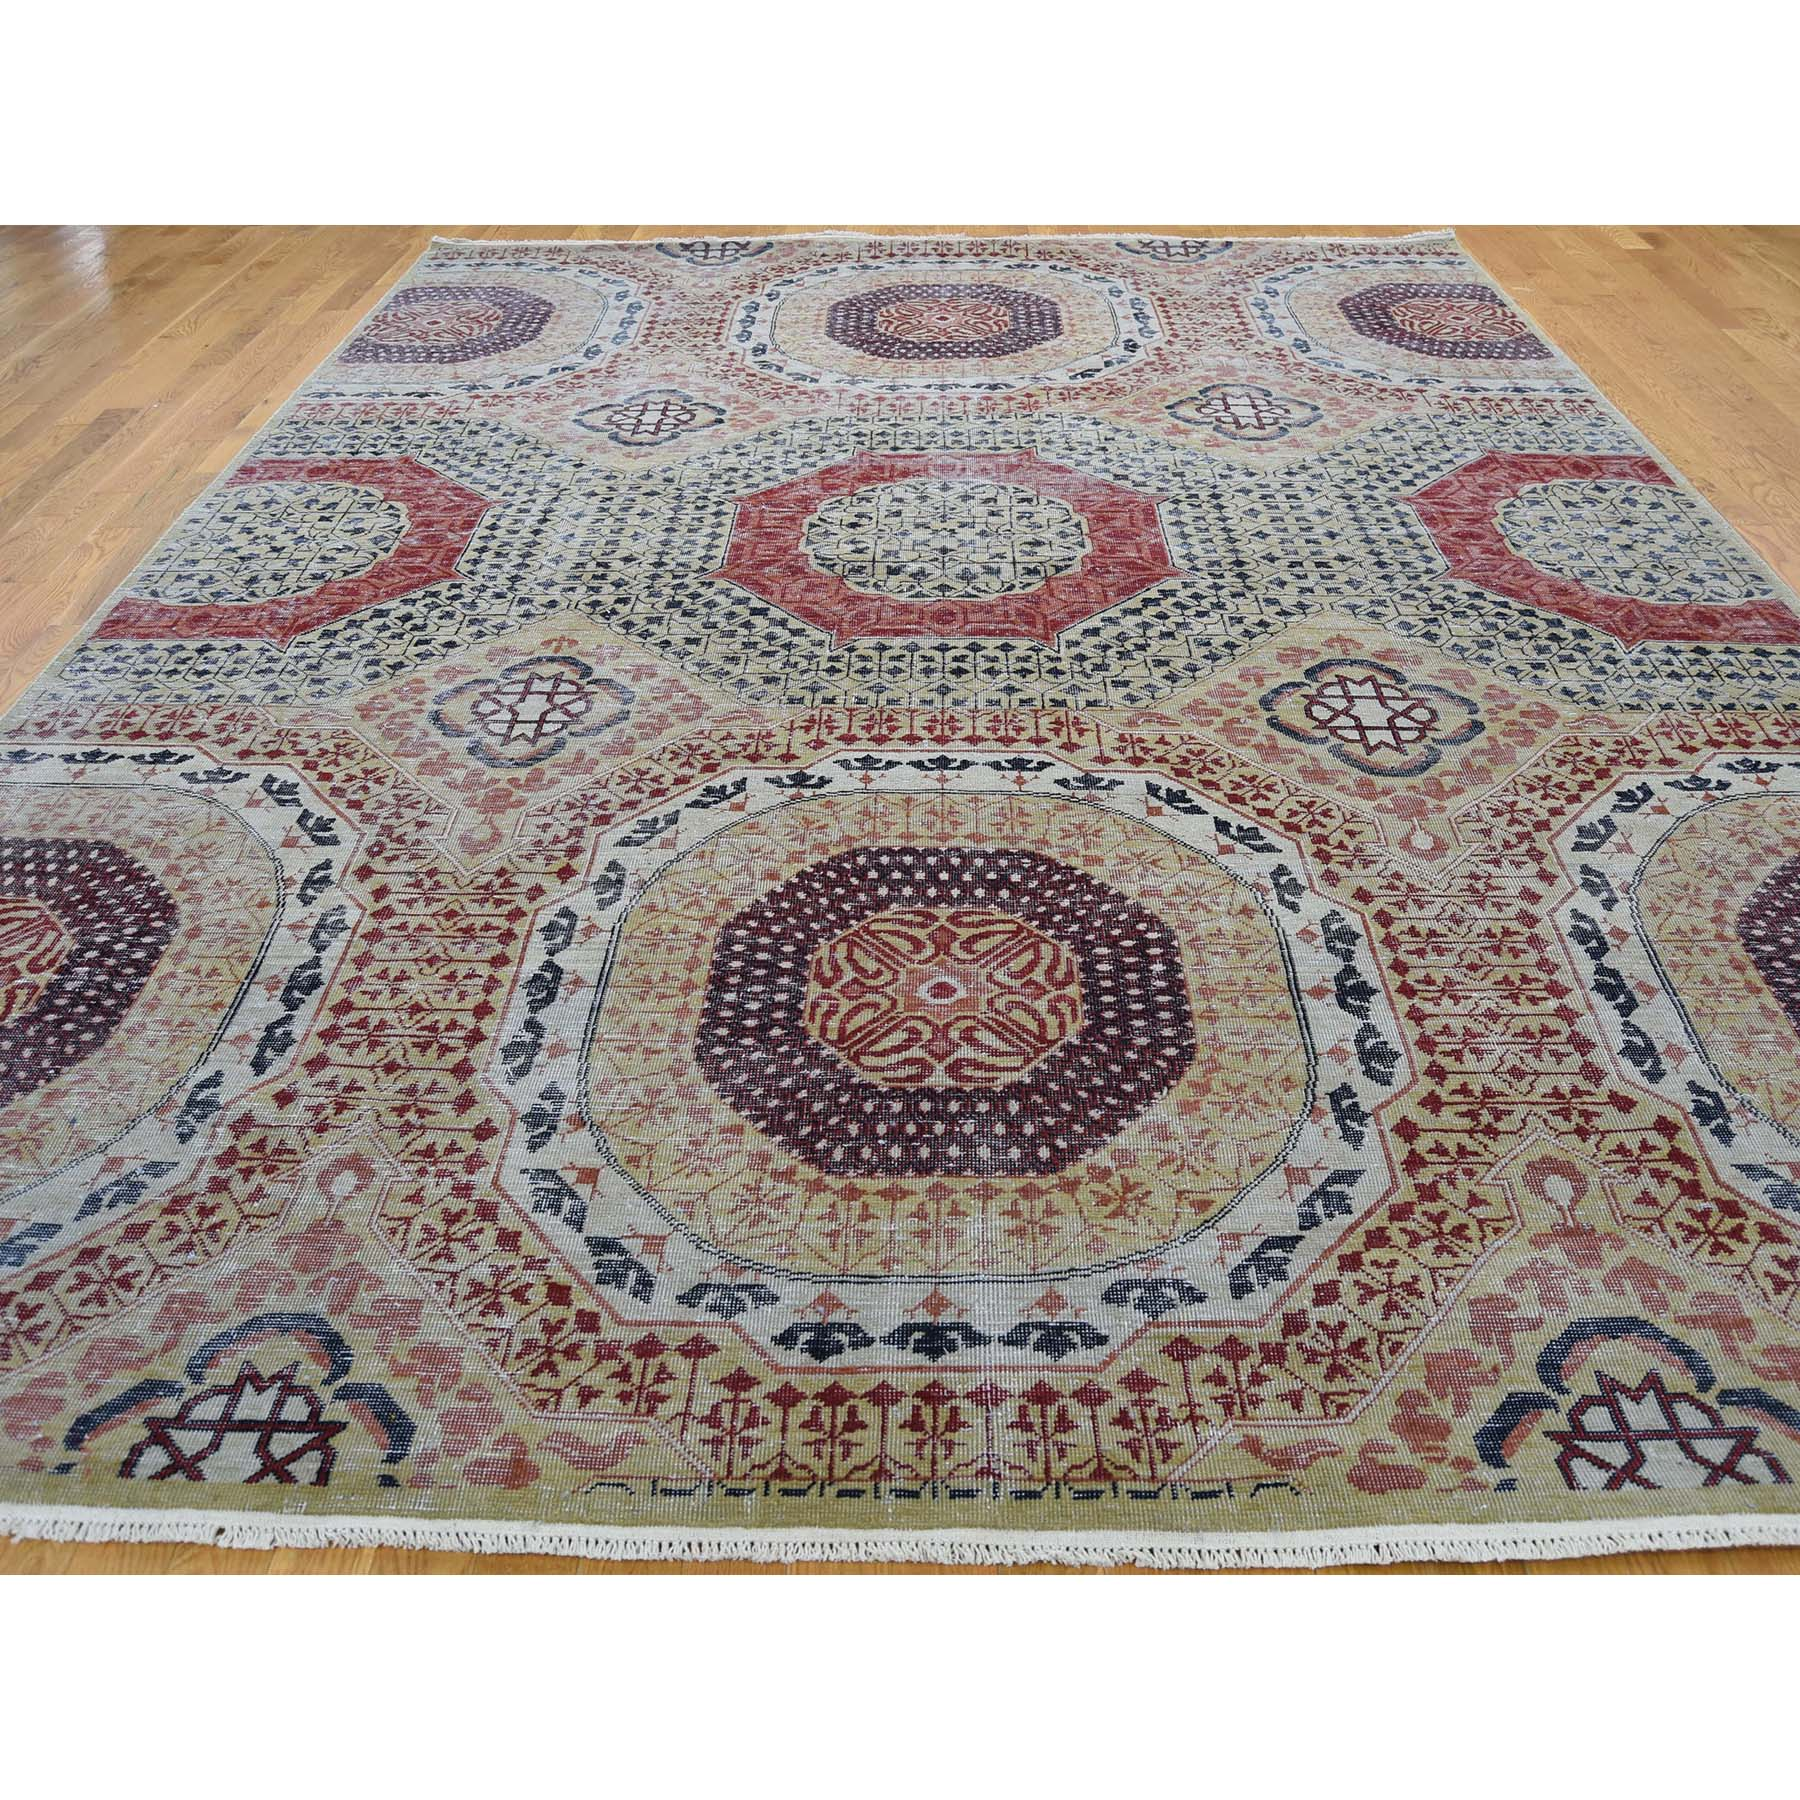 9-x12- Vintage Look Mamluk Zero Pile Shaved Low Worn Wool Rug